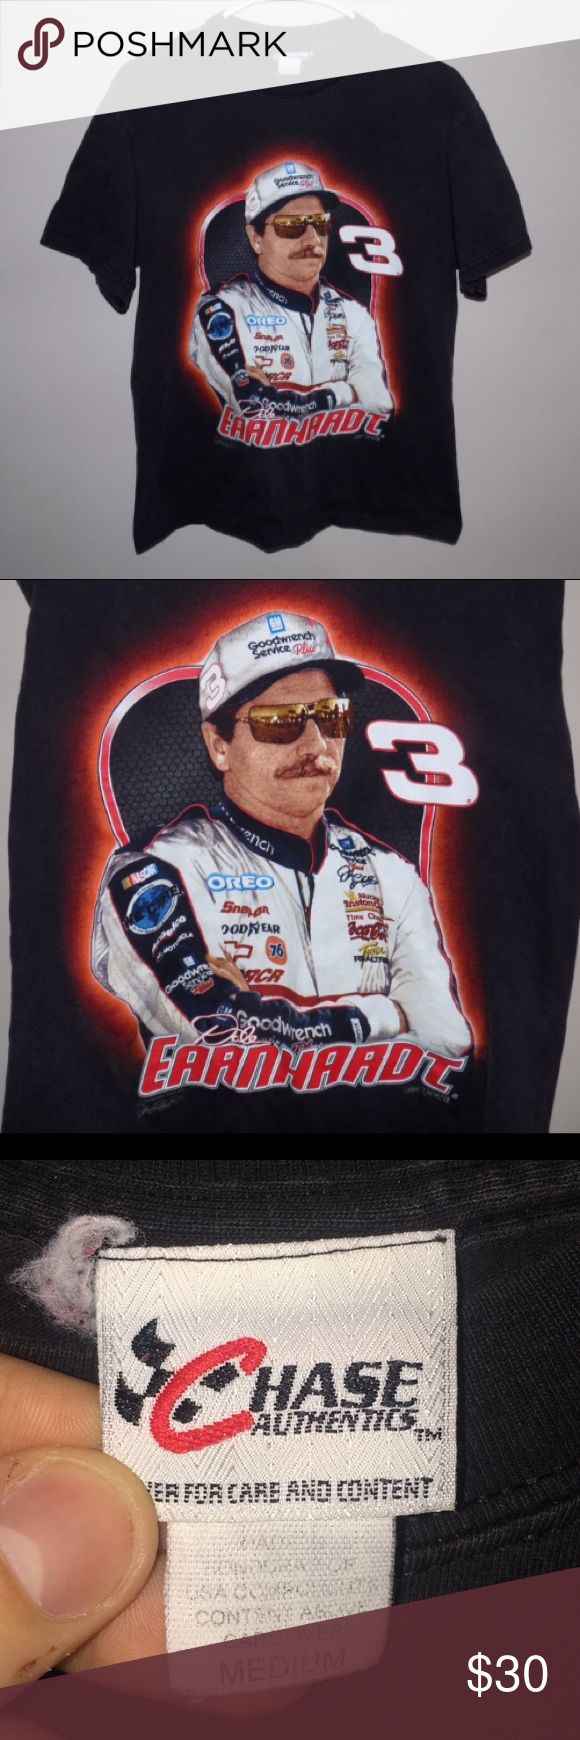 Vintage 90's Dale Earnhardt Sr. NASCAR T-Shirt Vintage 90's Dale Earnhardt Sr. NASCAR T-Shirt. Still in great (9/10) condition with no flaws or stains! Only defect is that there is light fading but still looks great! This shirt has some awesome graphics screen printed on the front and back of the shirt! Vintage Shirts Tees - Short Sleeve